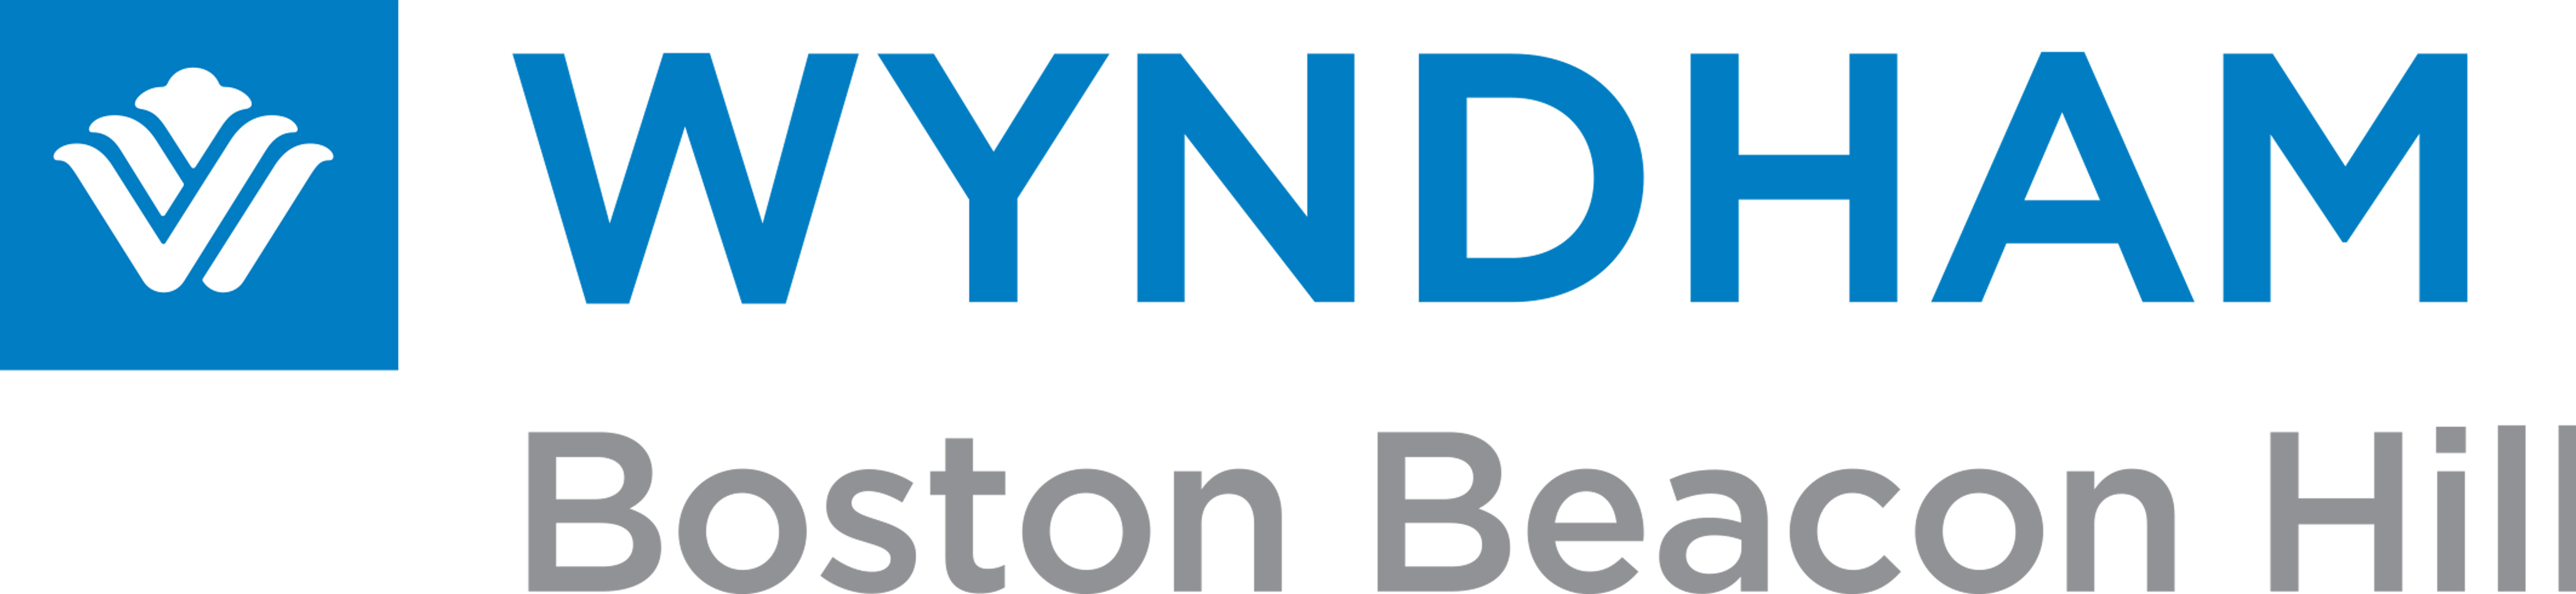 Wyndham Boston Logo High Res